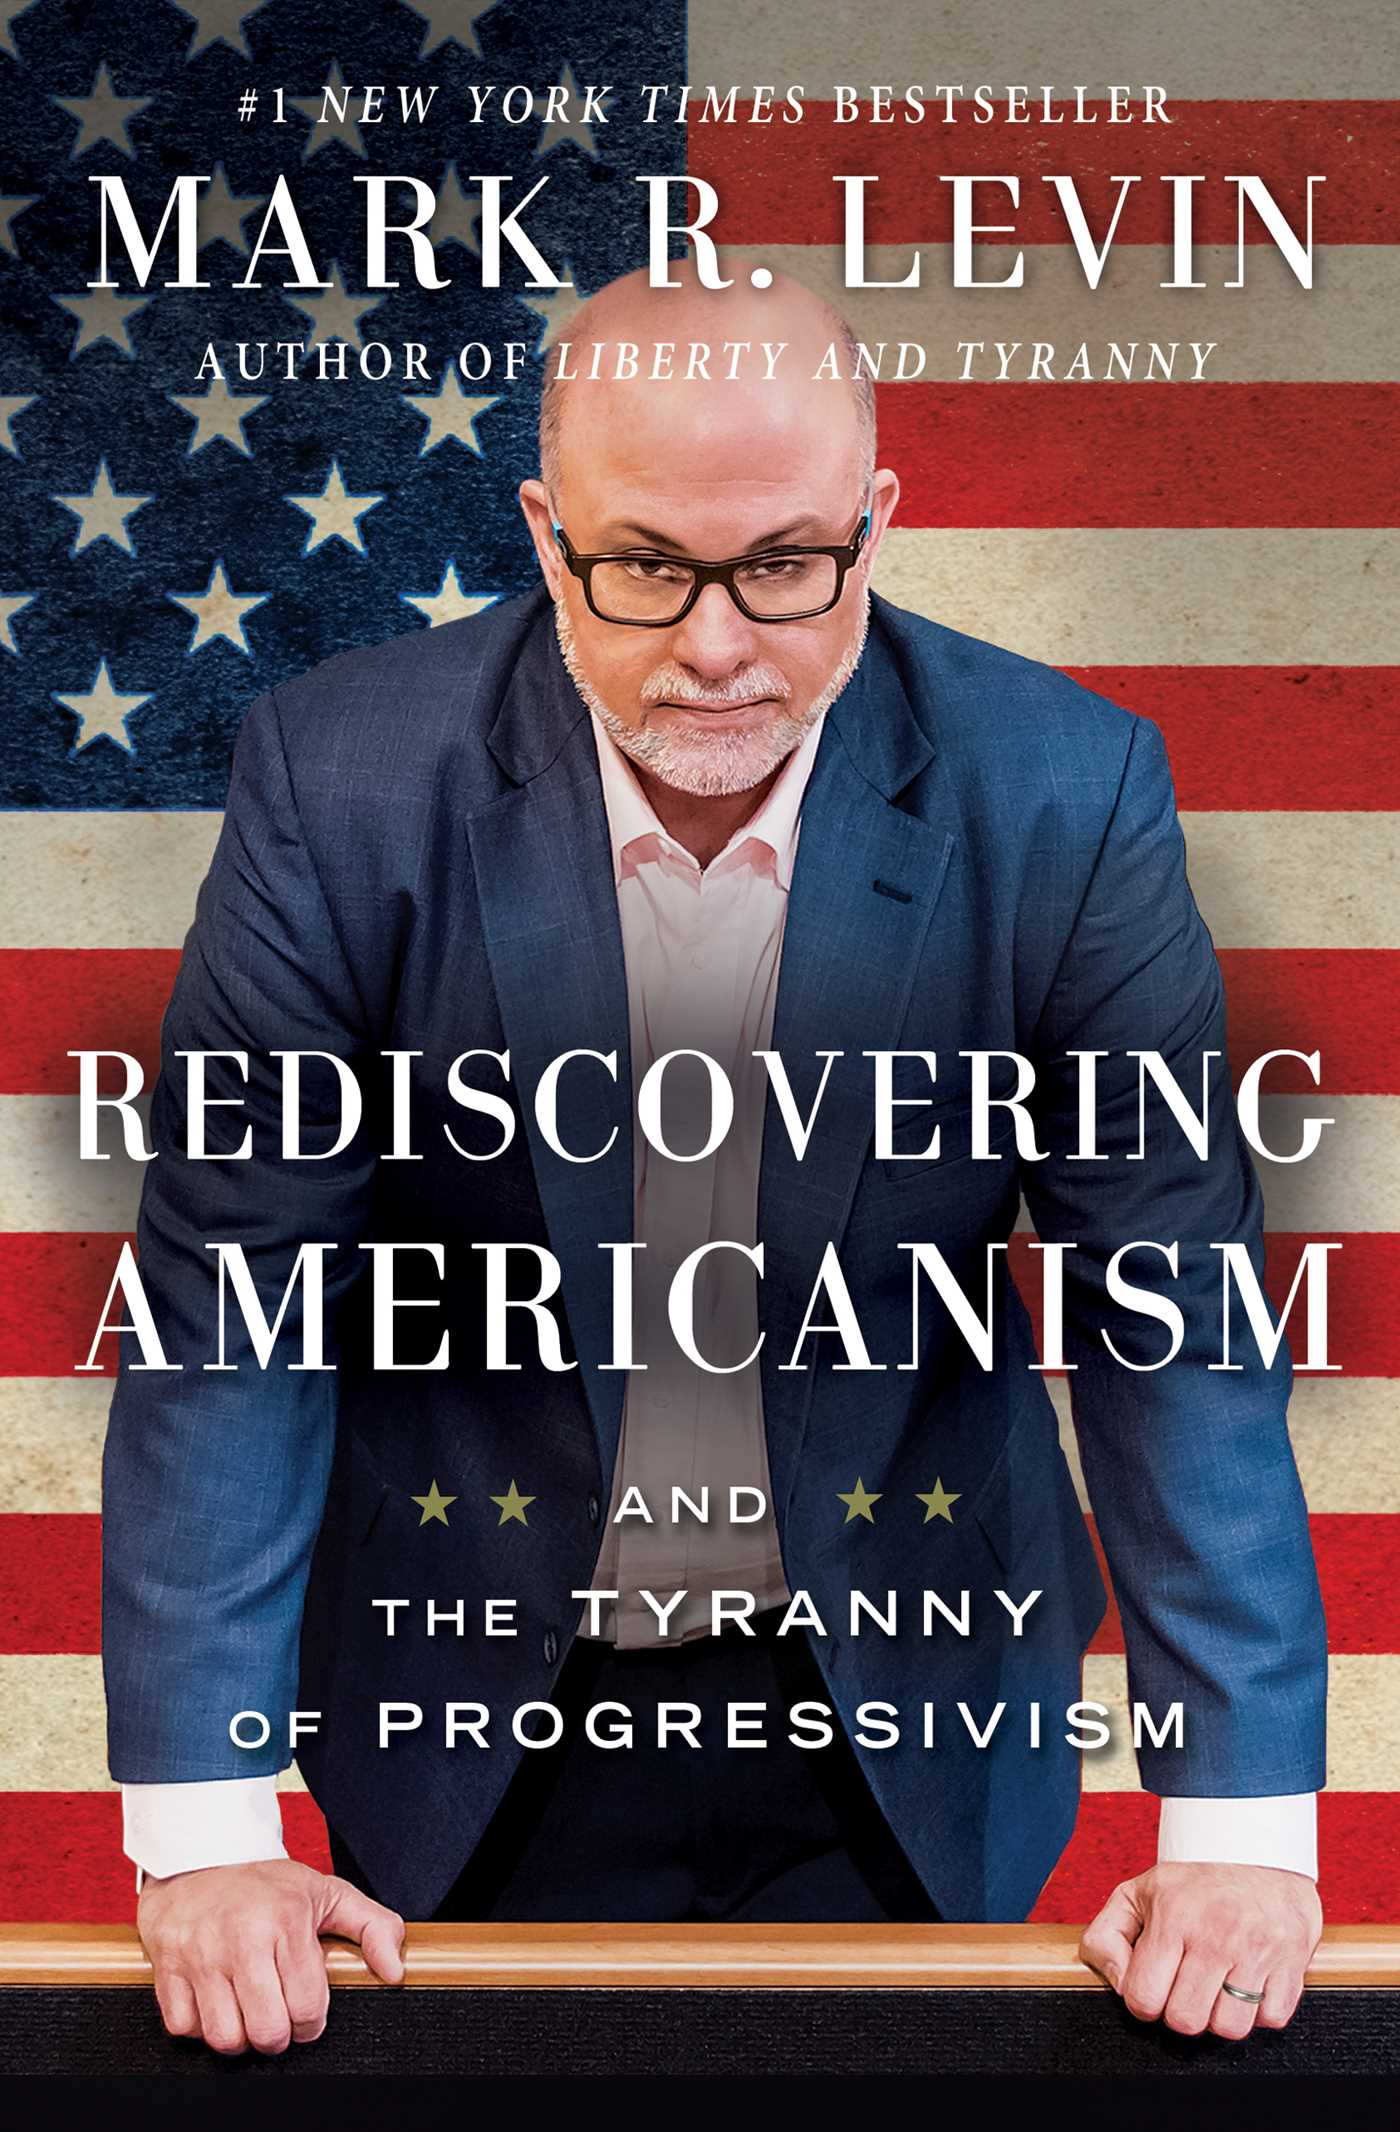 Rediscovering americanism 9781476773476 hr